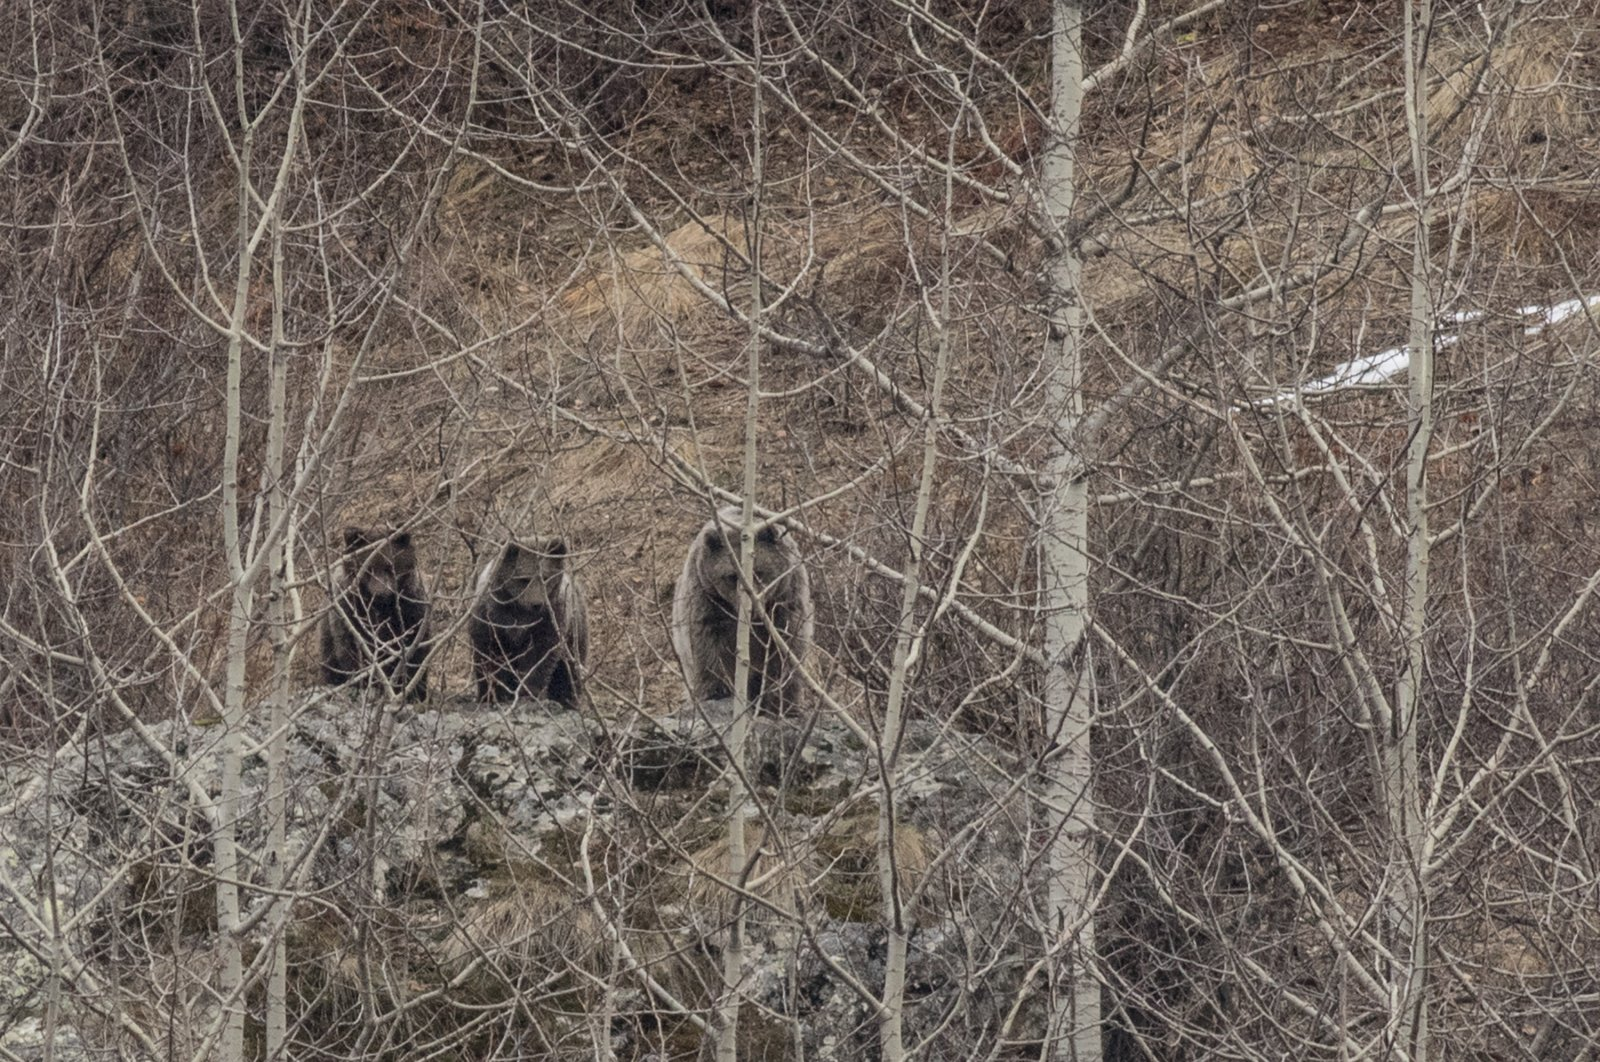 Bears spotted in the Black Sea province of Rize, Turkey, June 22, 2020. (DHA Photo)